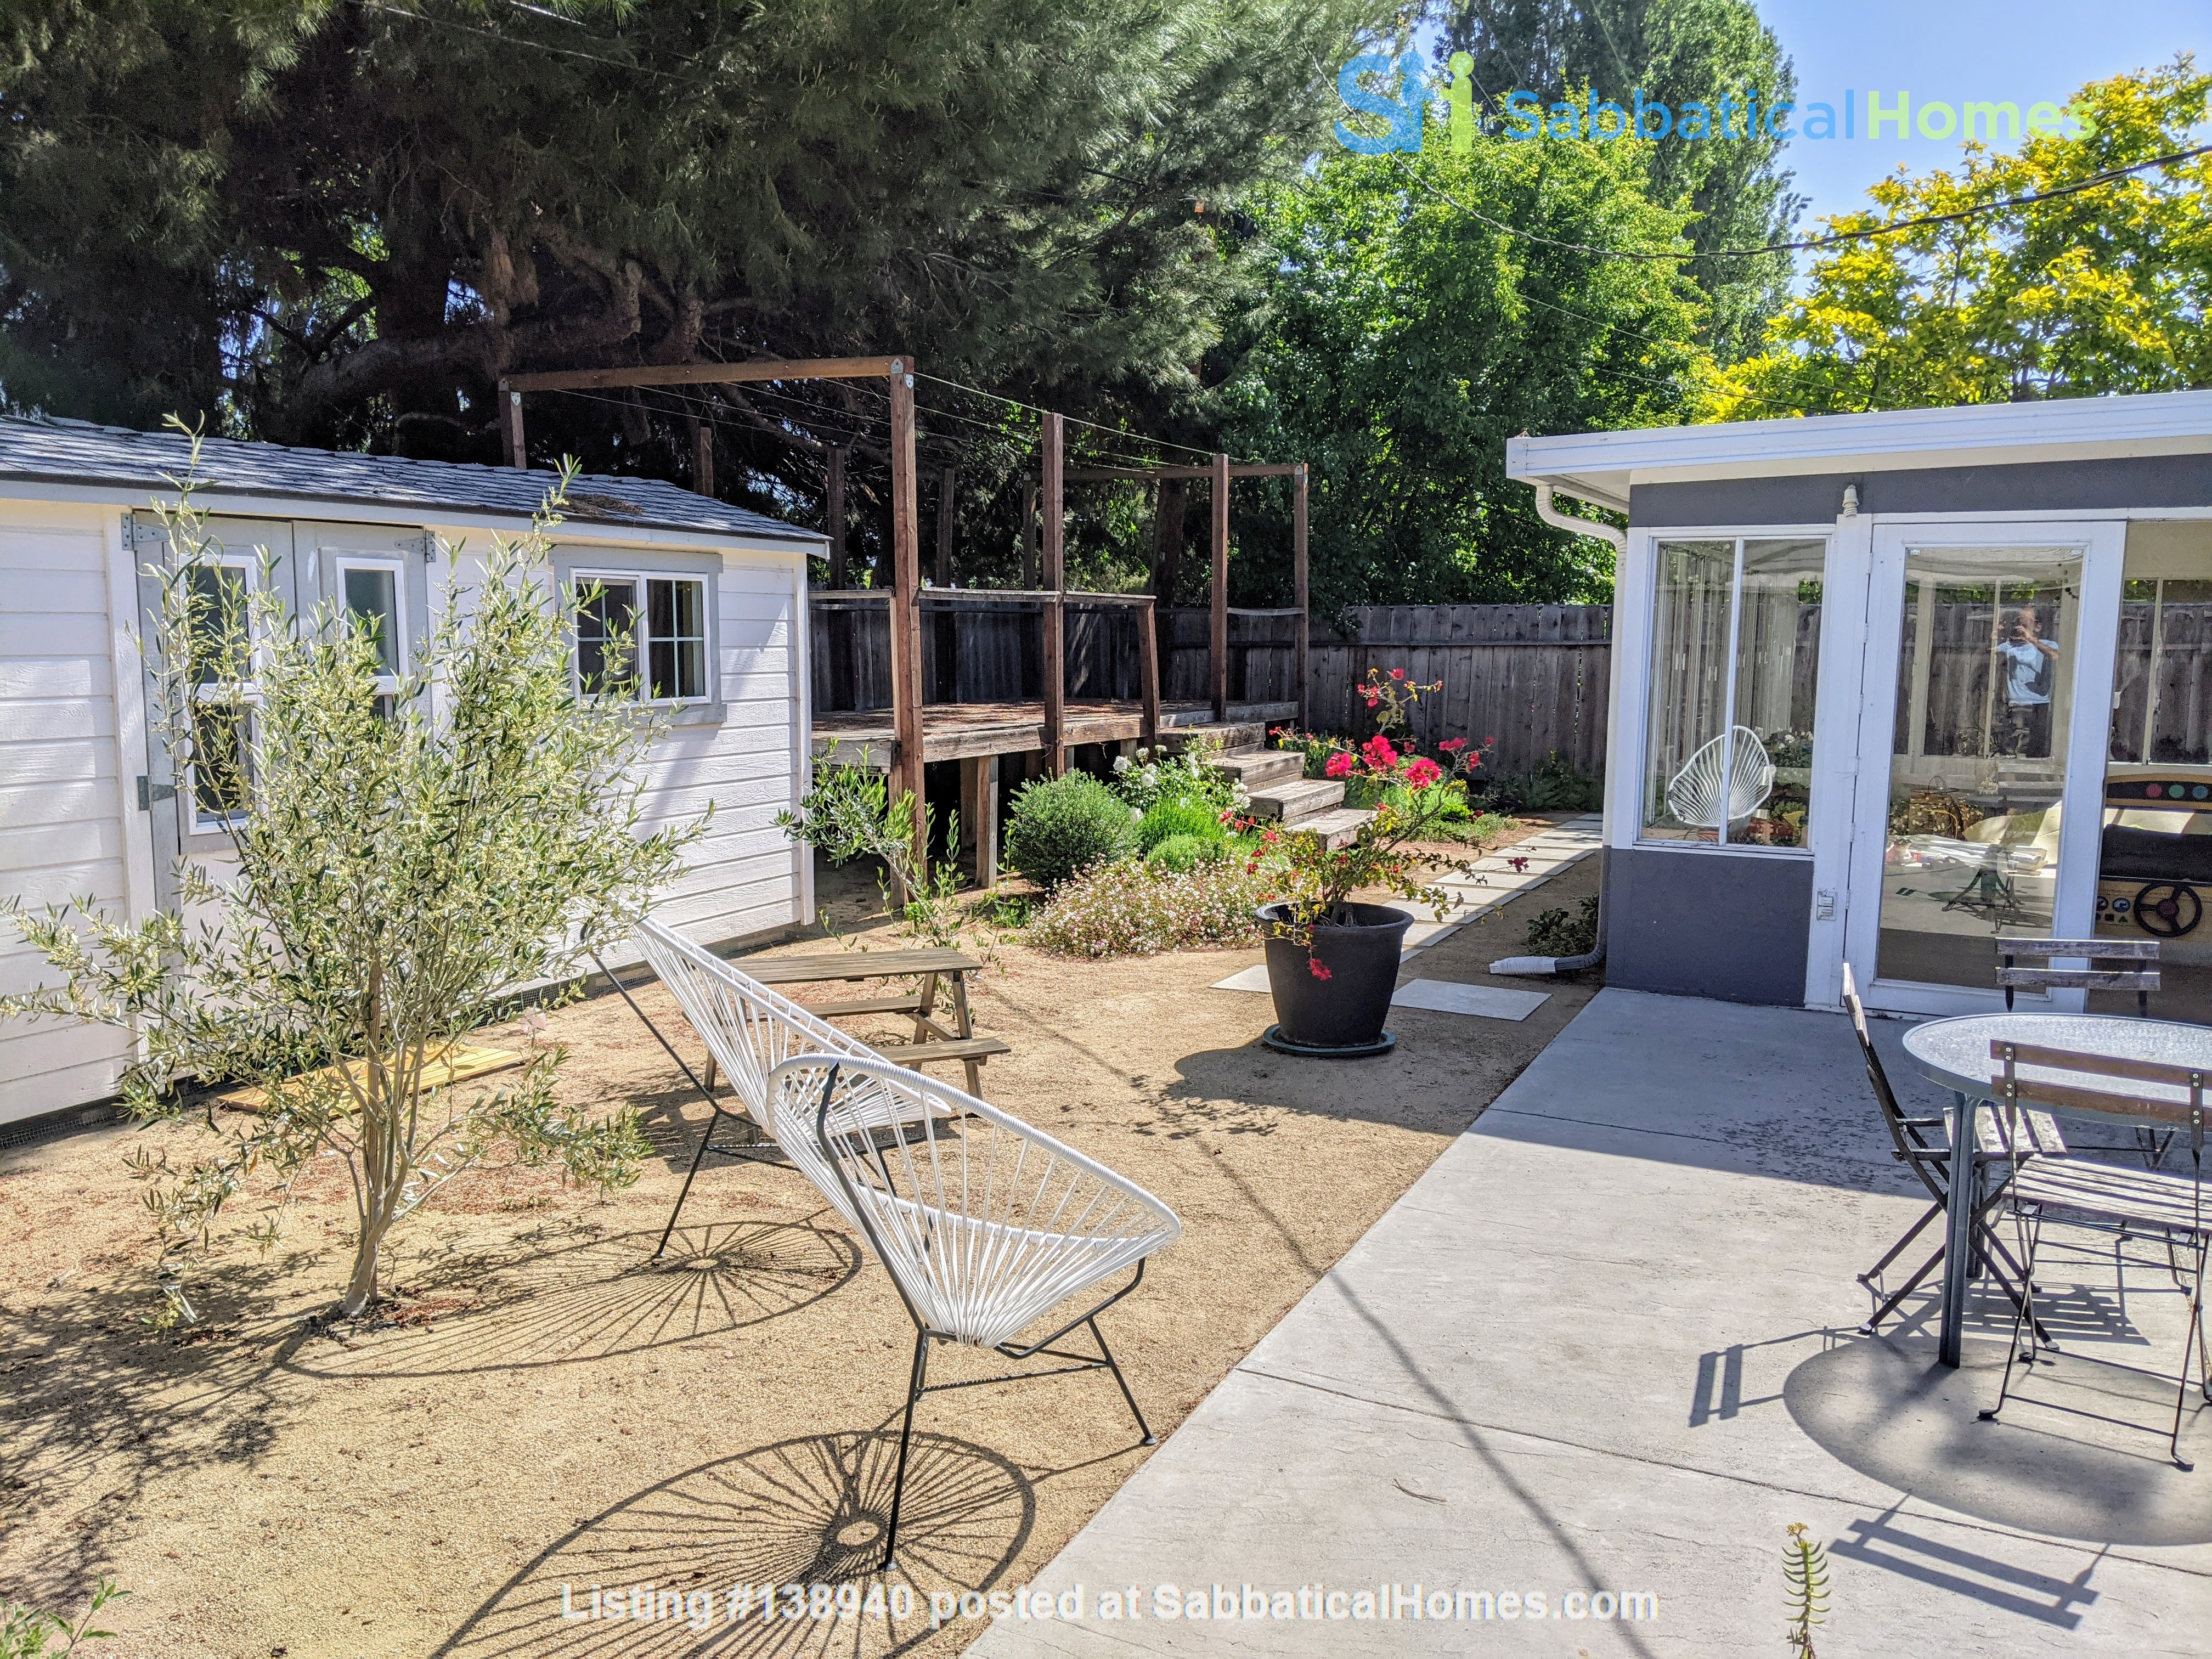 Beautiful Furnished 3 Bd/ 2 Ba Sunny Home in the heart of Silicon Valley Home Rental in Sunnyvale, California, United States 9